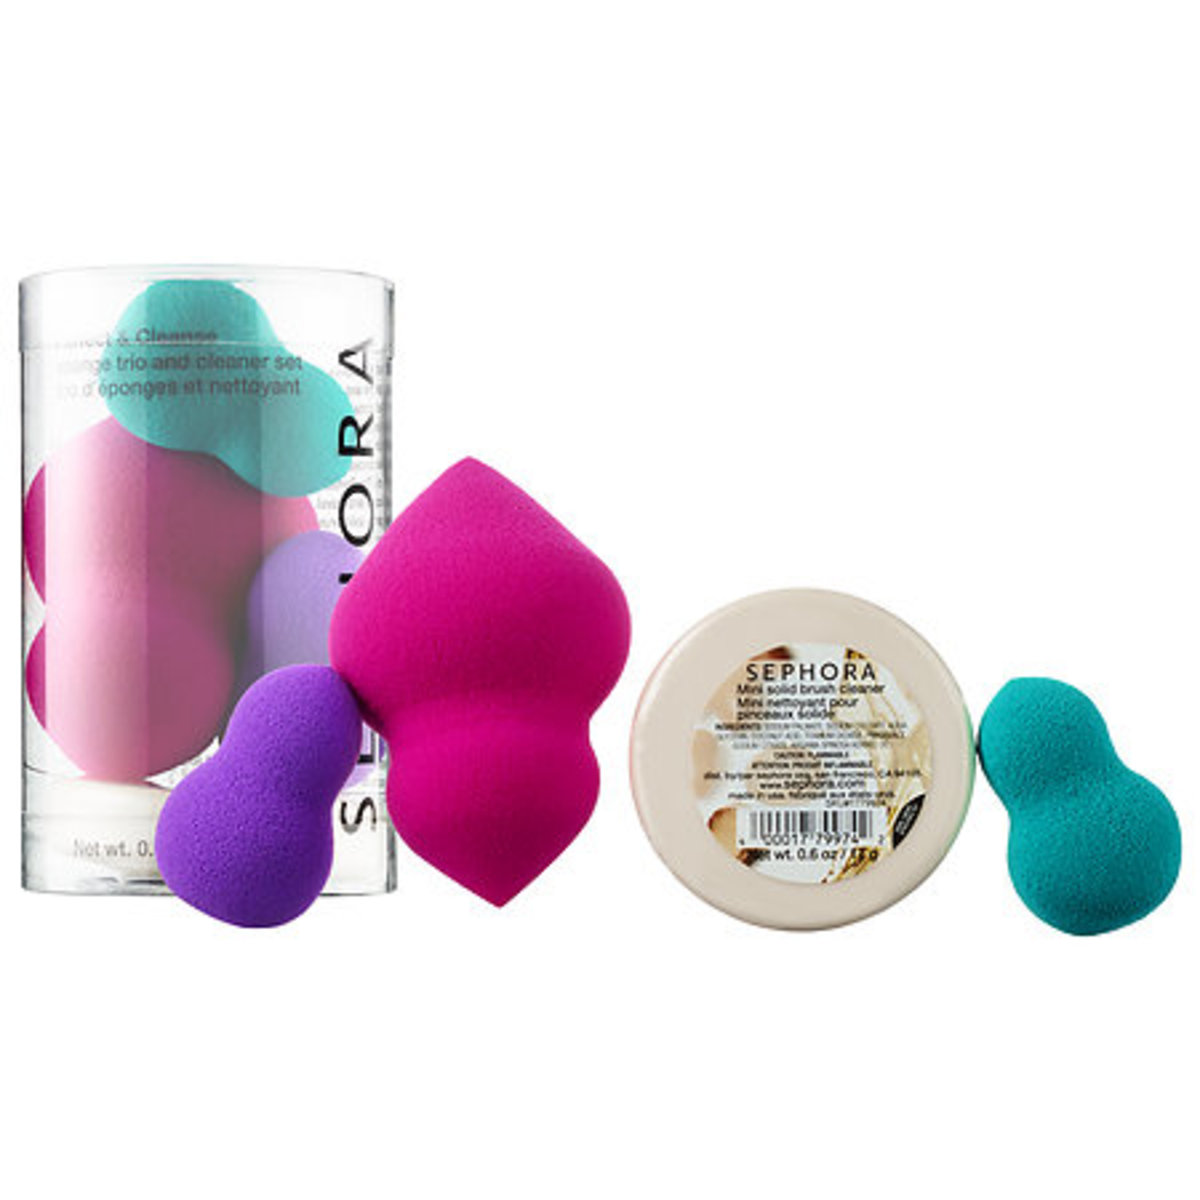 Sephora Collection Perfect and Cleanse Sponge Trio and Cleaner Set